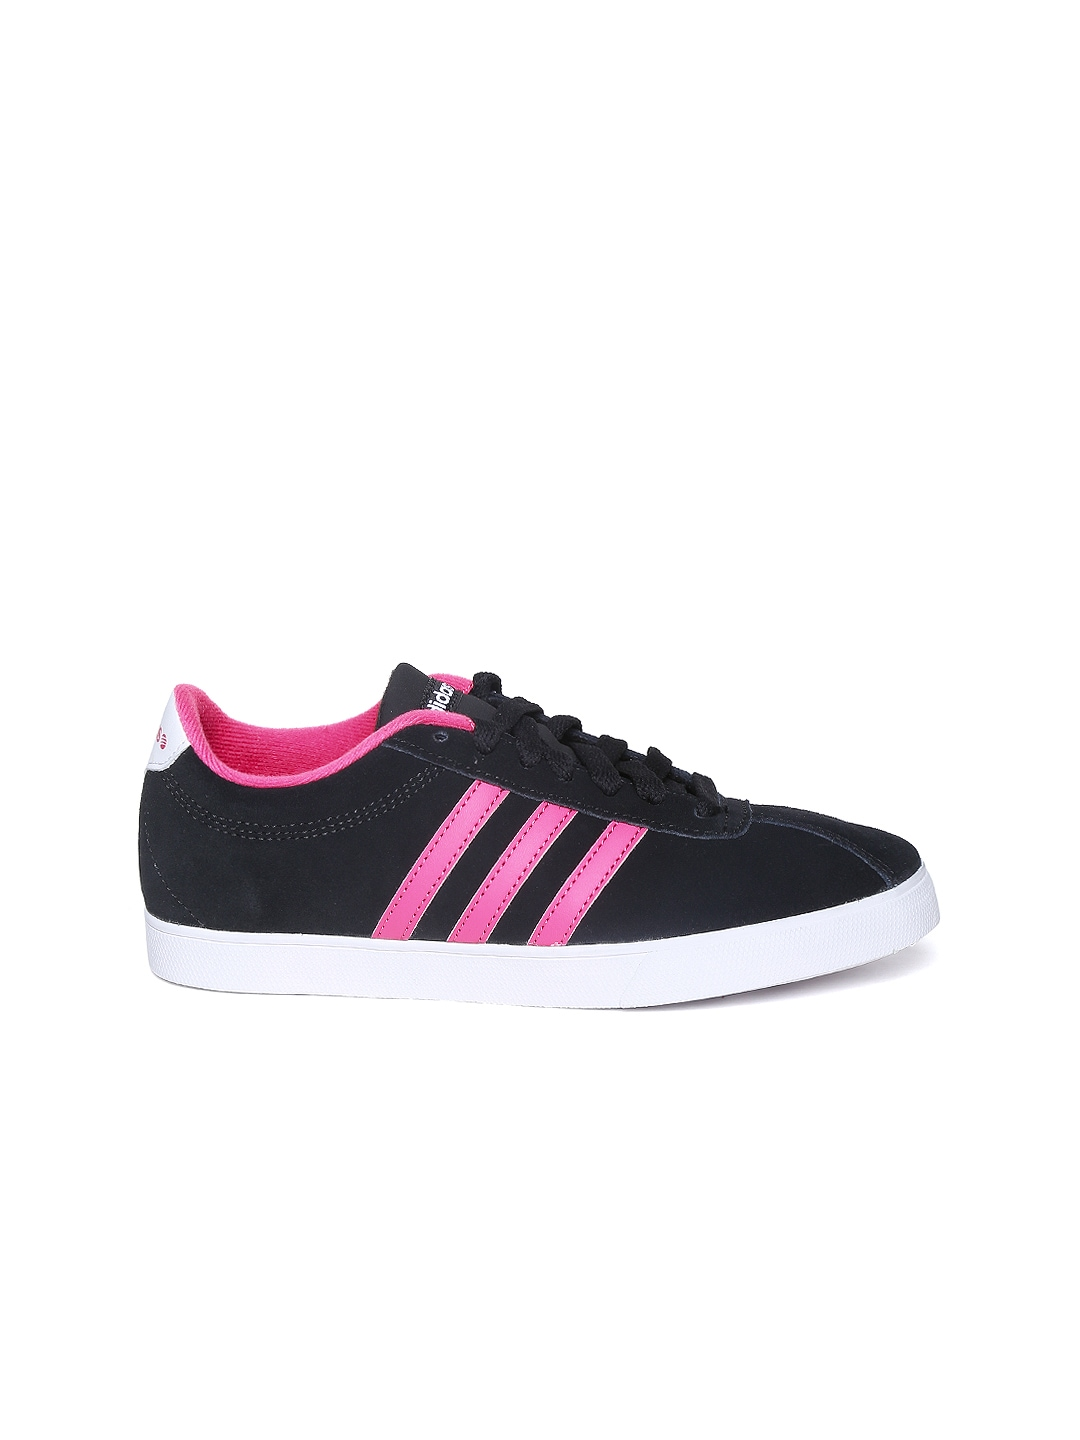 myntra adidas neo black courtset casual shoes 878578